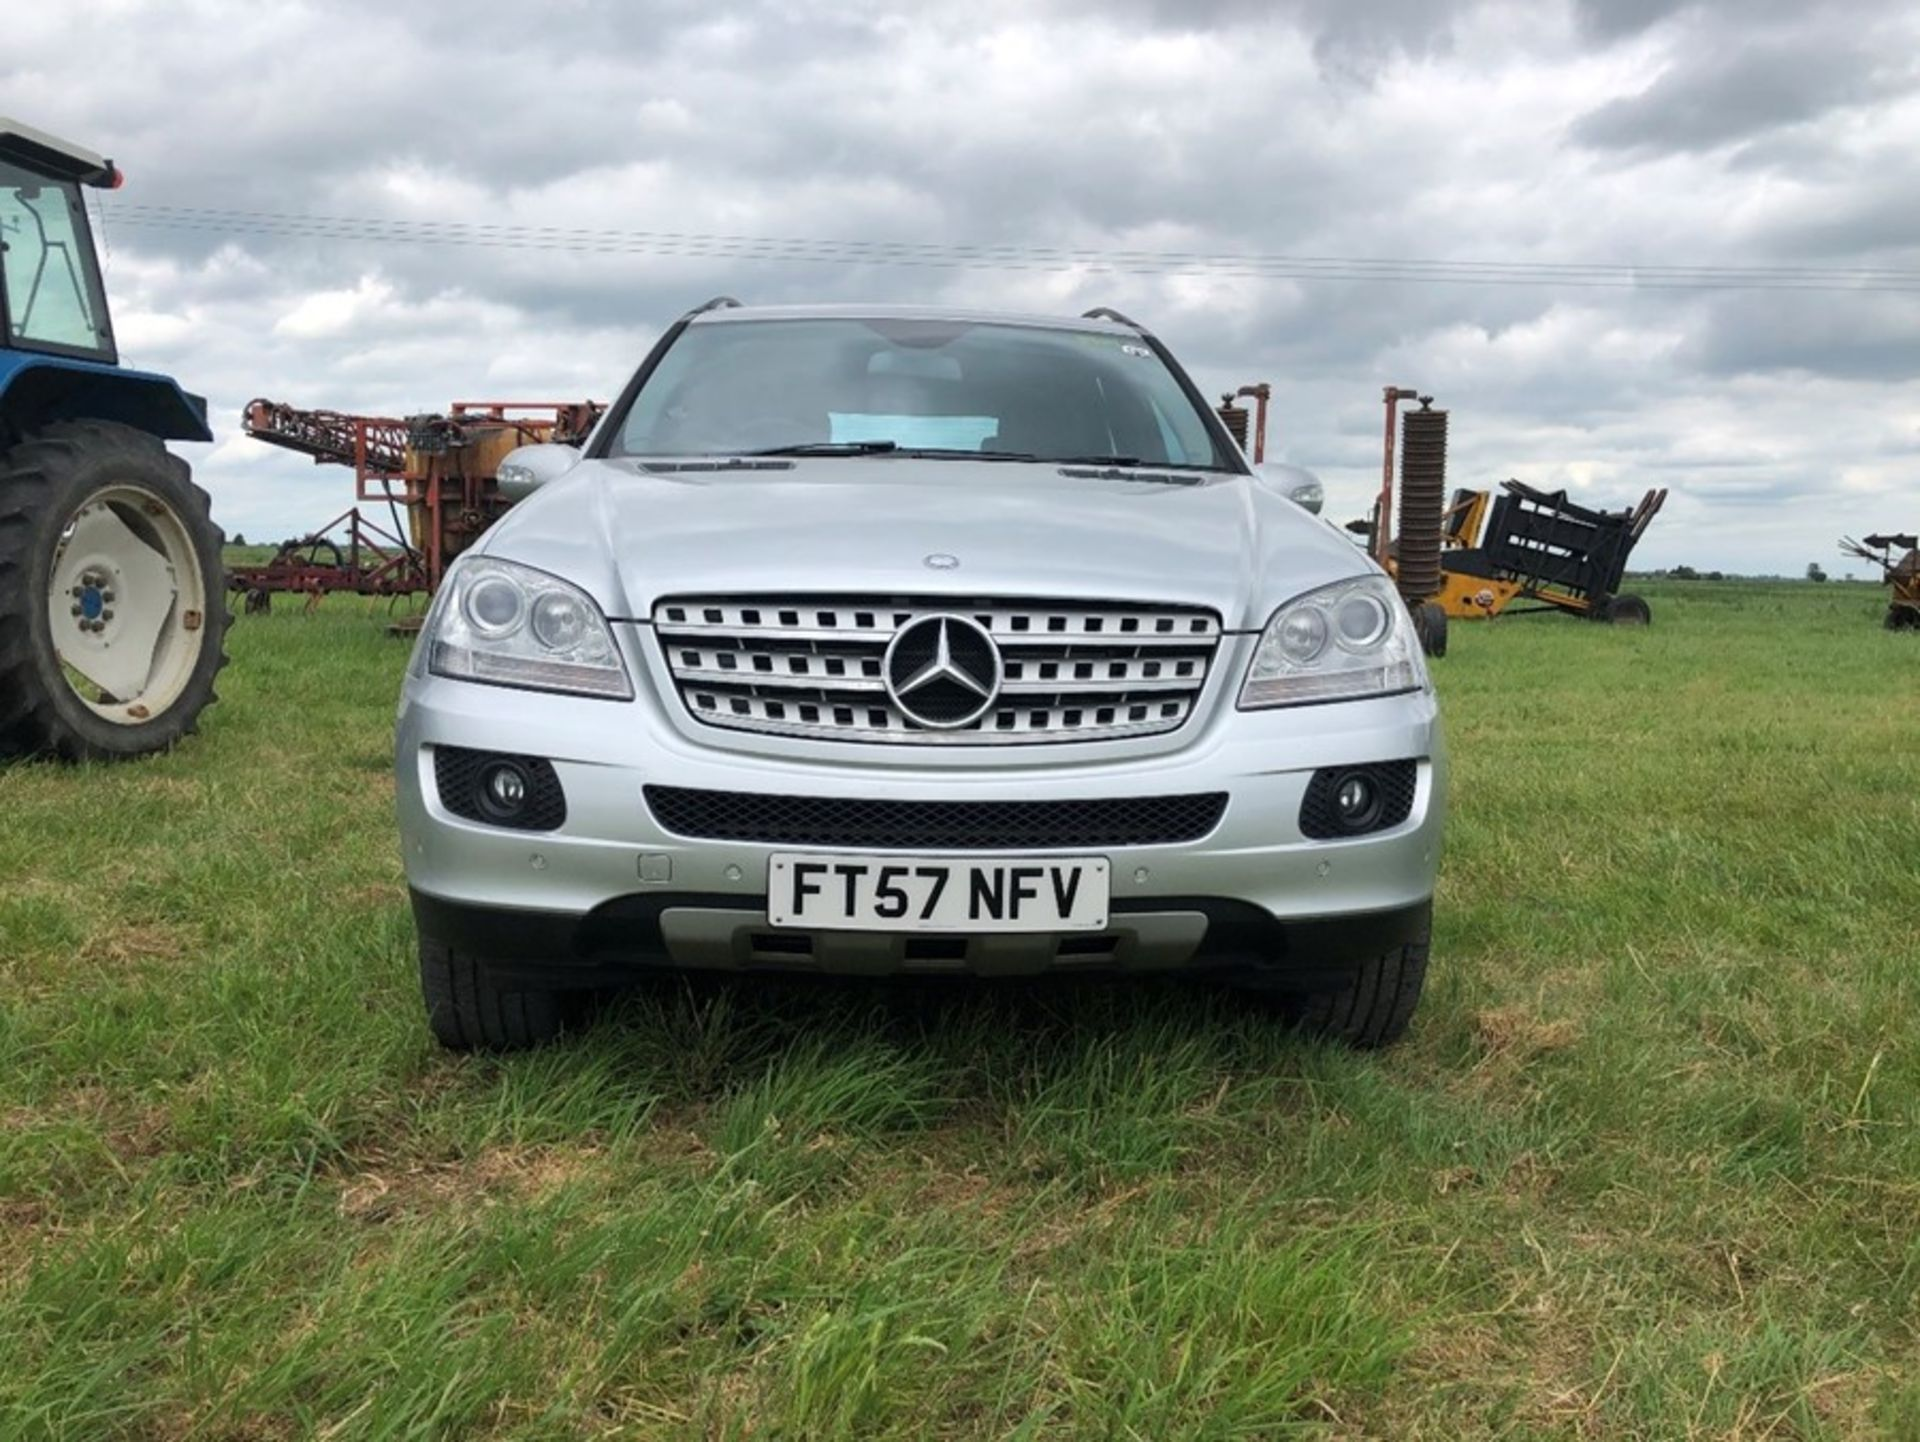 (07) Mercedes ML 320 CDI, diesel, 4 Matic car, 129,530 miles, one owner, tow bar. full service - Image 4 of 14